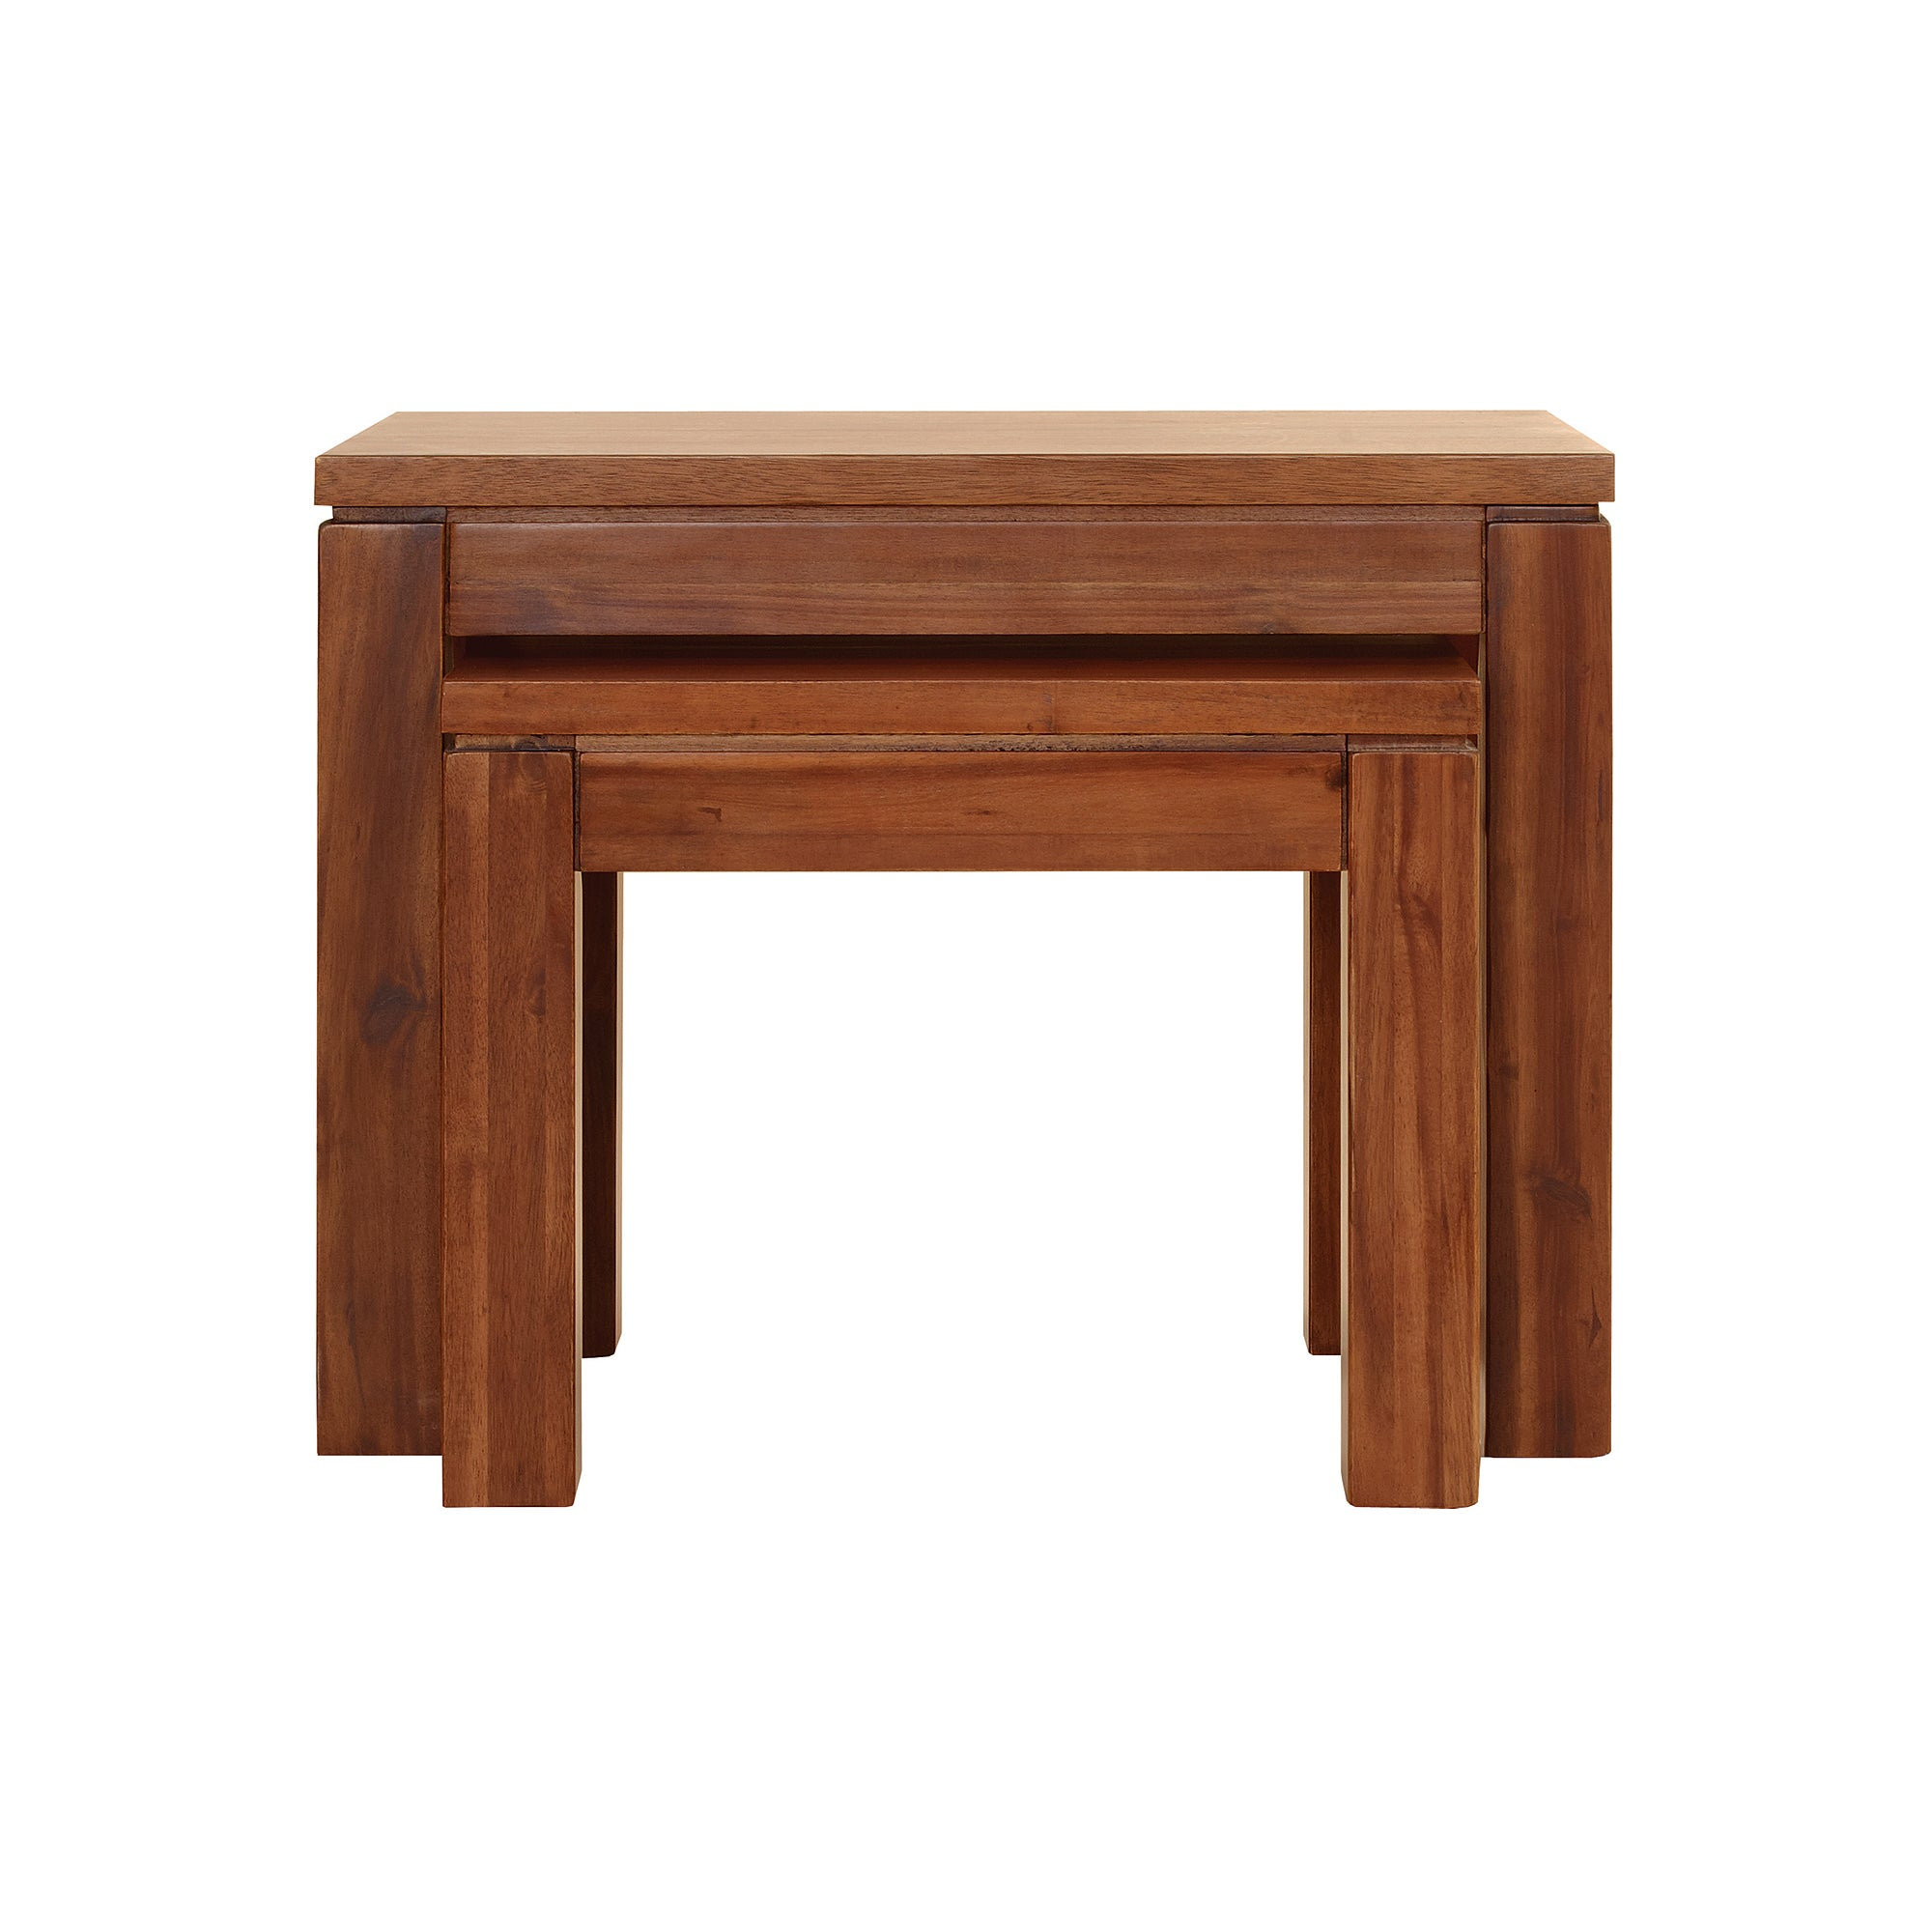 Seville Acacia Dark Wood Nest of 2 Tables